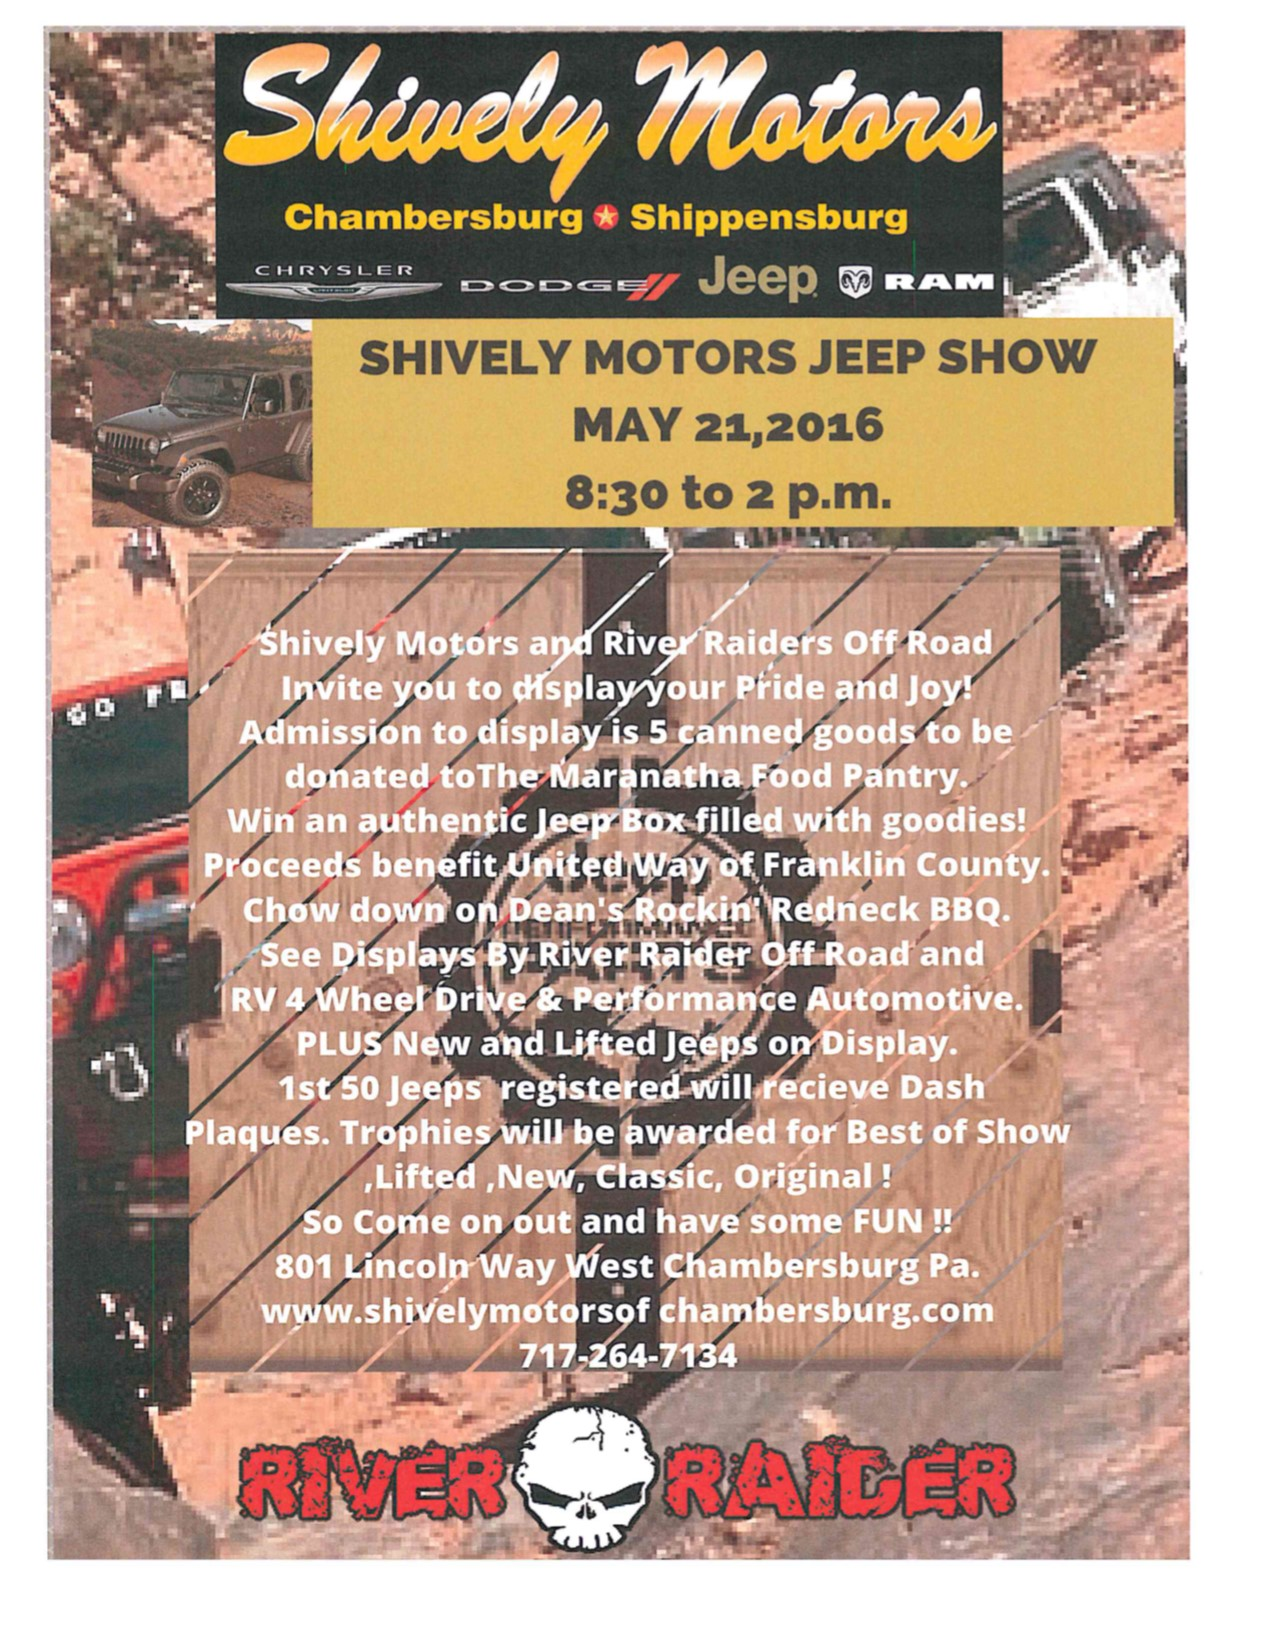 shively motors jeep show may 21 2016 chambersburg